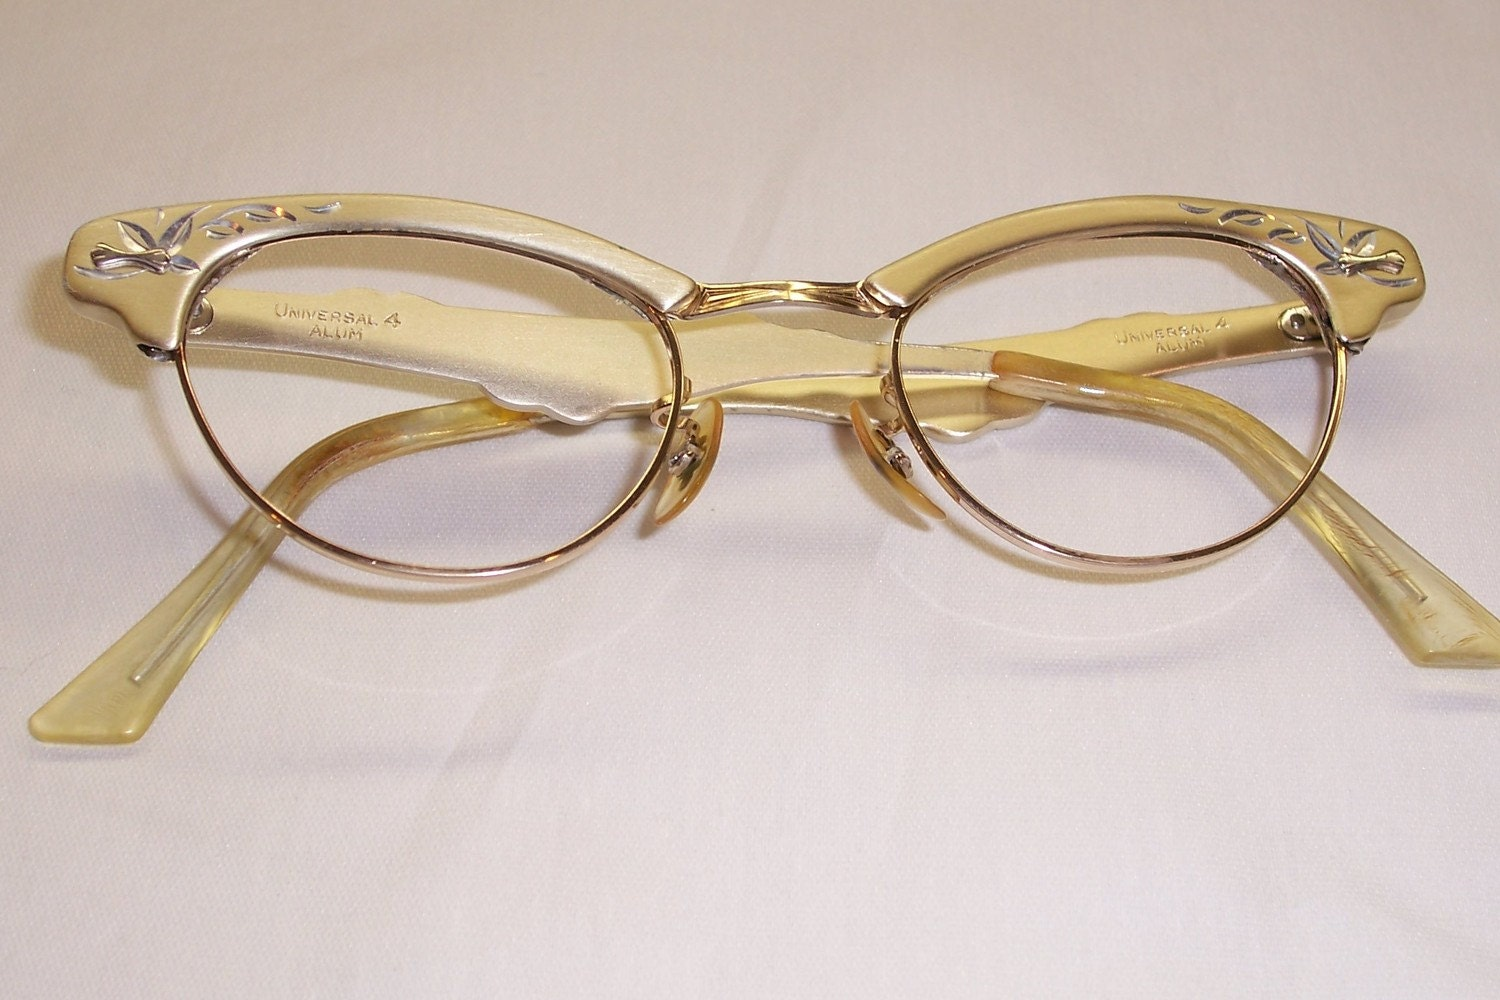 Vintage Cateye Frame from Universal